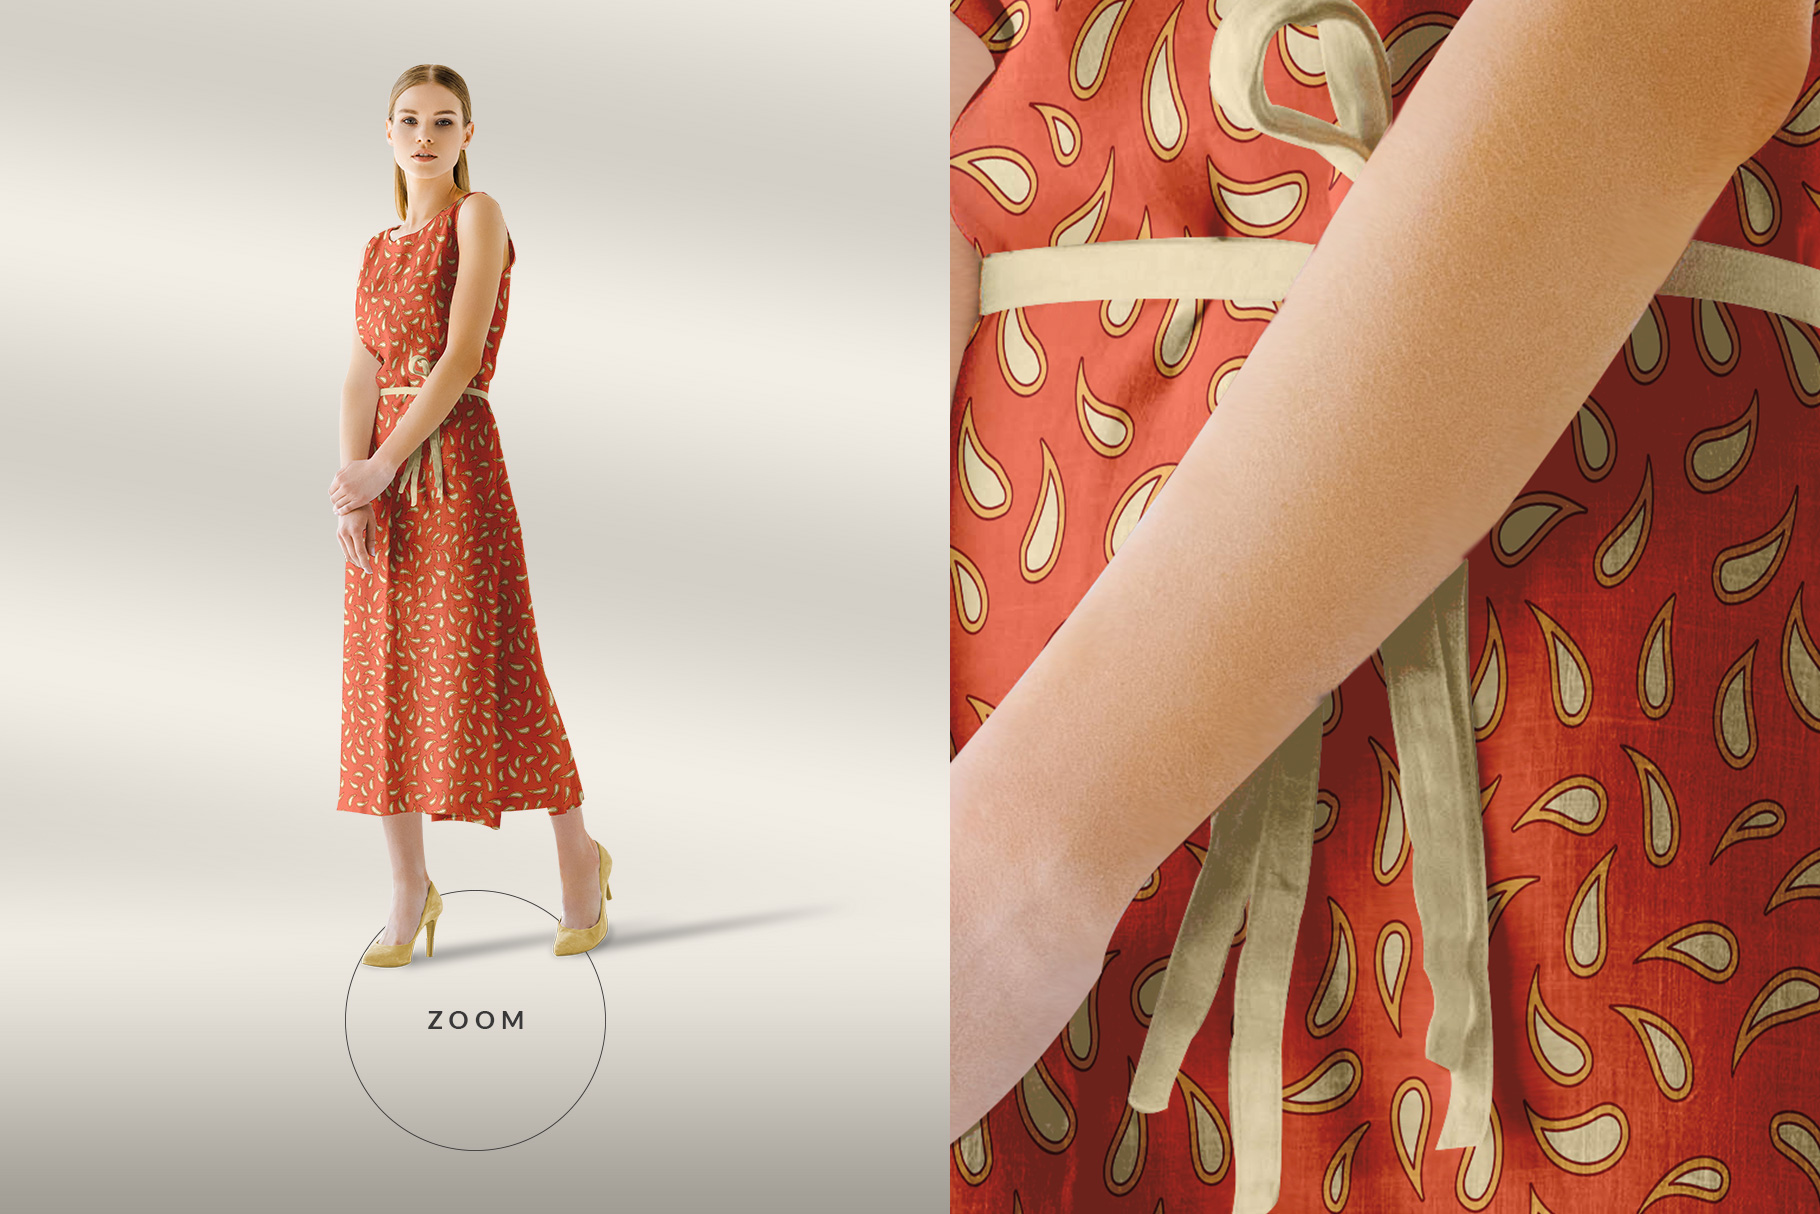 zoomed in image of the women's sleeveless summer dress mockup vol.2